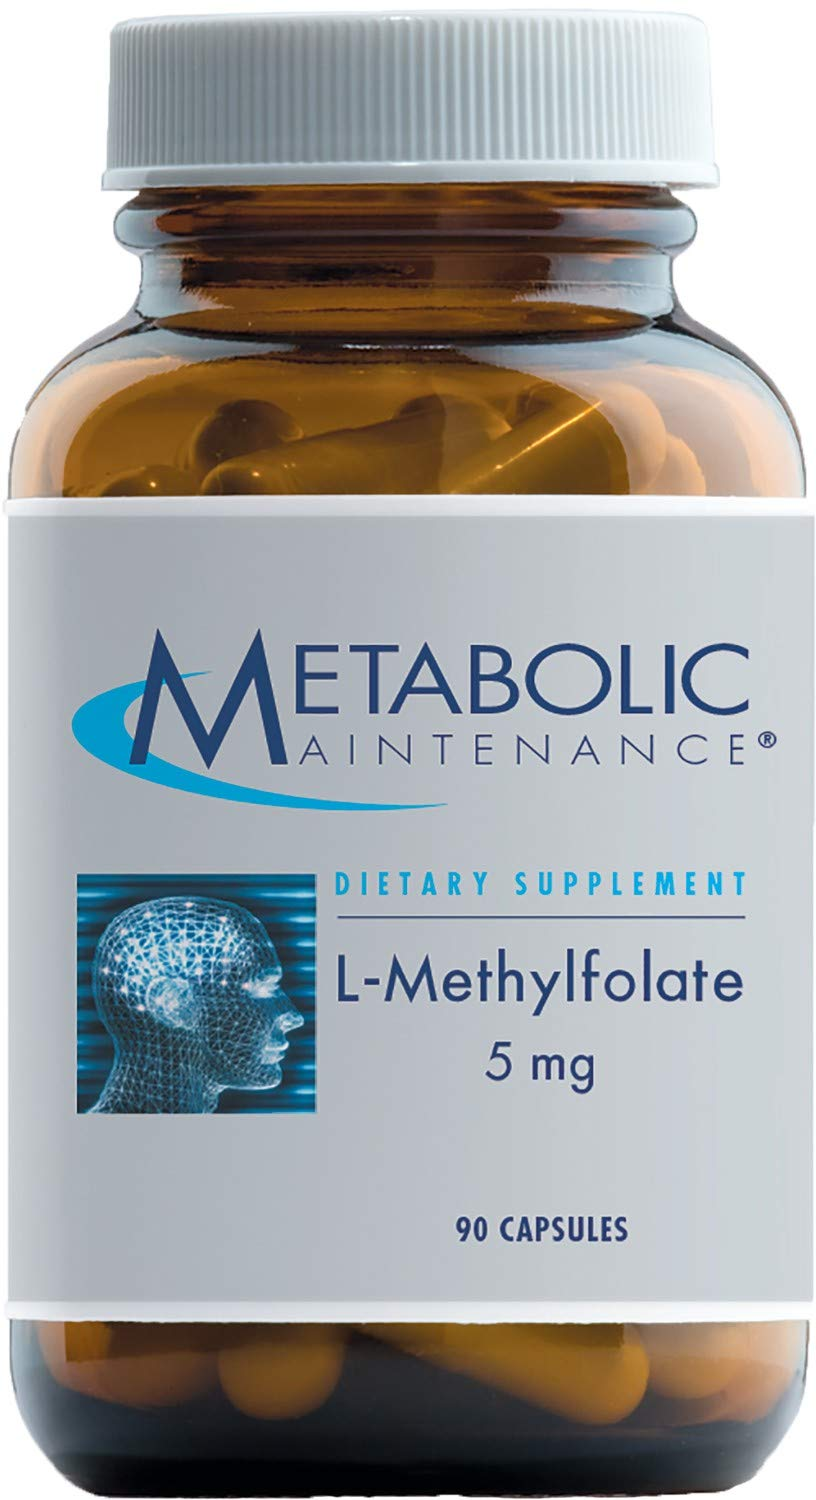 Metabolic Maintenance L-Methylfolate 5 mg - Active Folate (L-5-MTHF) for Mood, Nerve + Cardiovascular Support (90 Capsules)